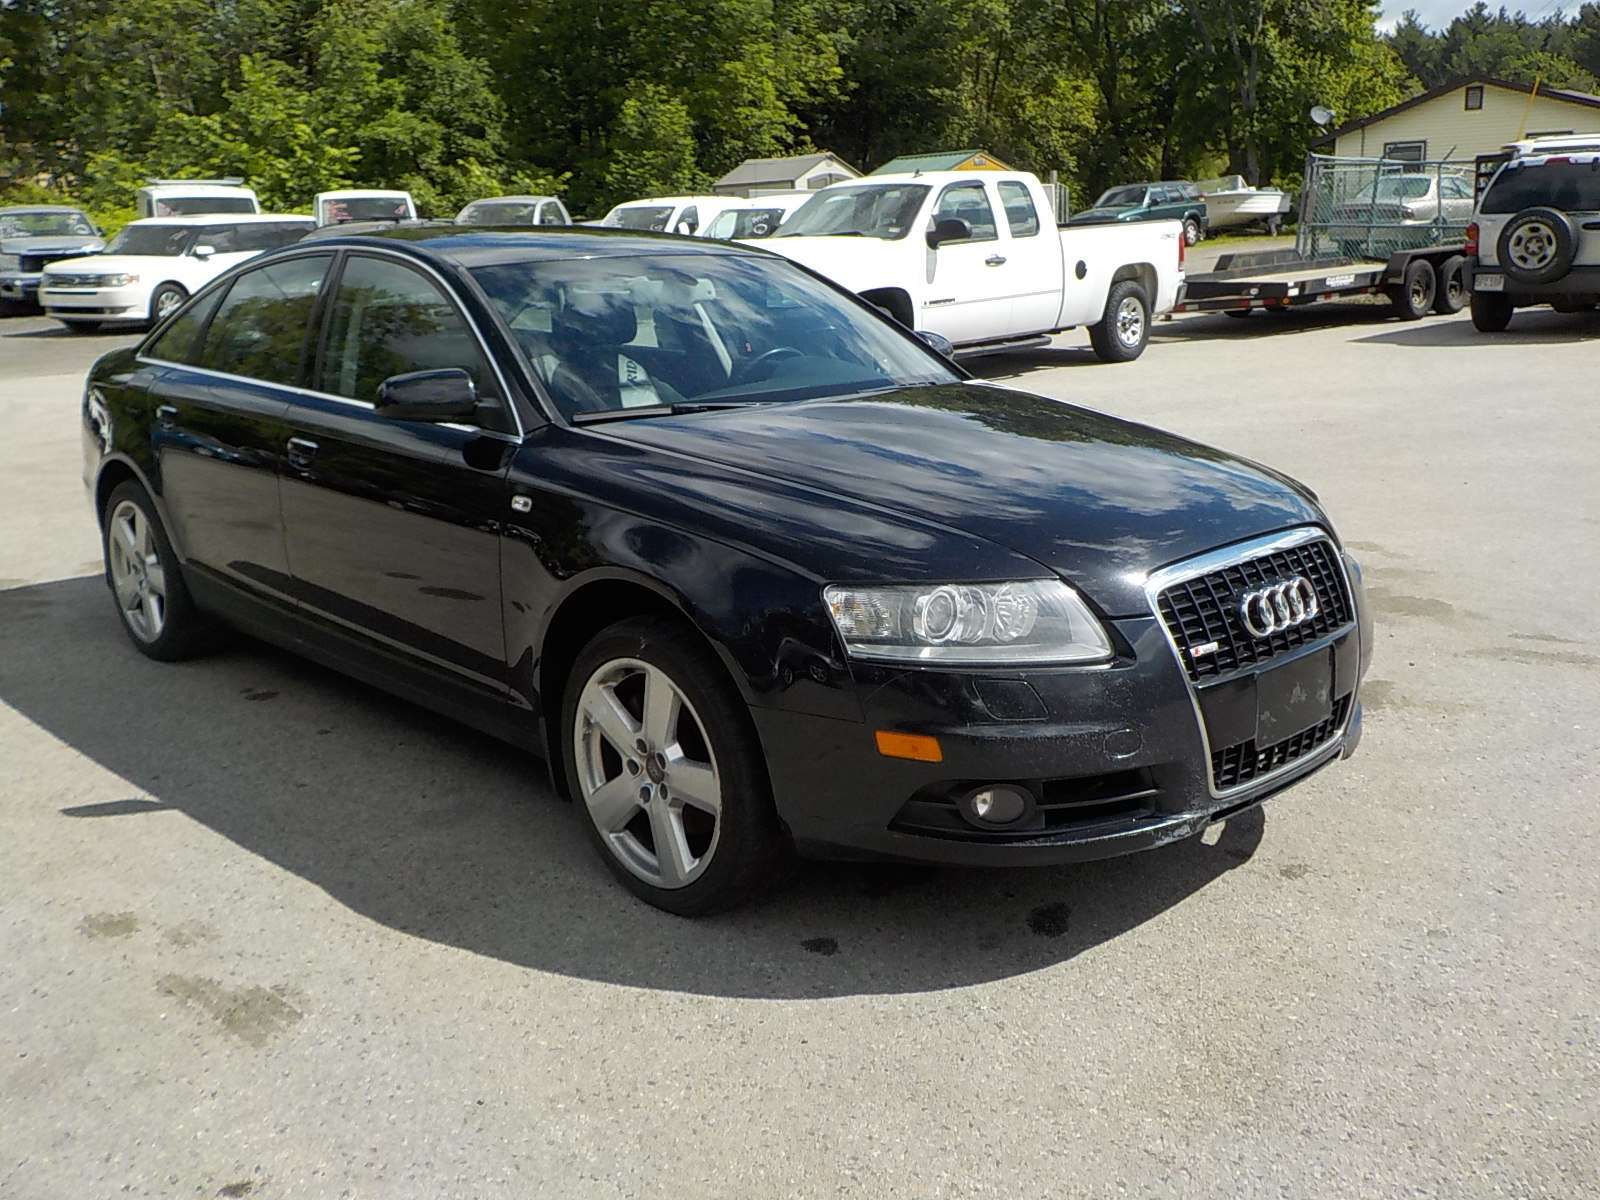 Used Cars Under $2000 Lovely Audi Cars for Sale Under $4 000 In Derry Nh Autotrader